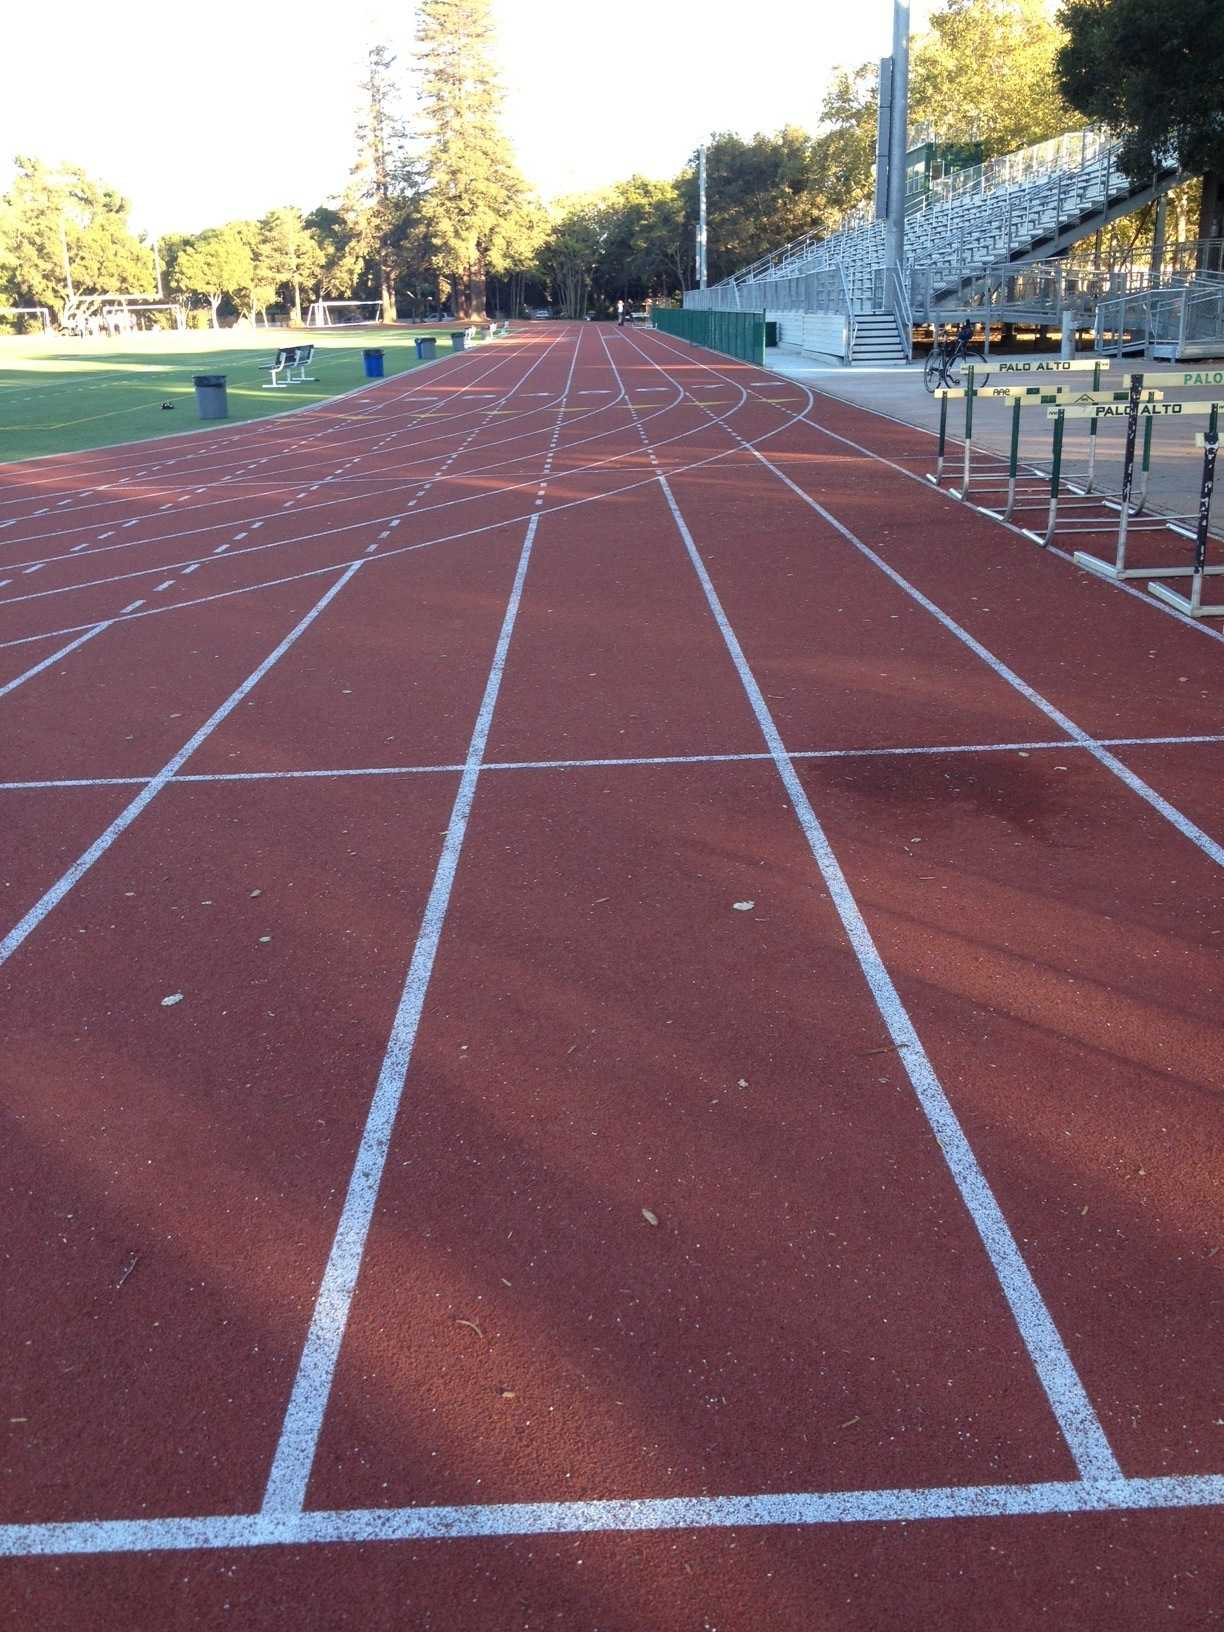 One of the straightaways on the Paly track sits unused late in the day. During the summer, workers resurfaced the track and finished jump pits, completing the football stadium remodel.